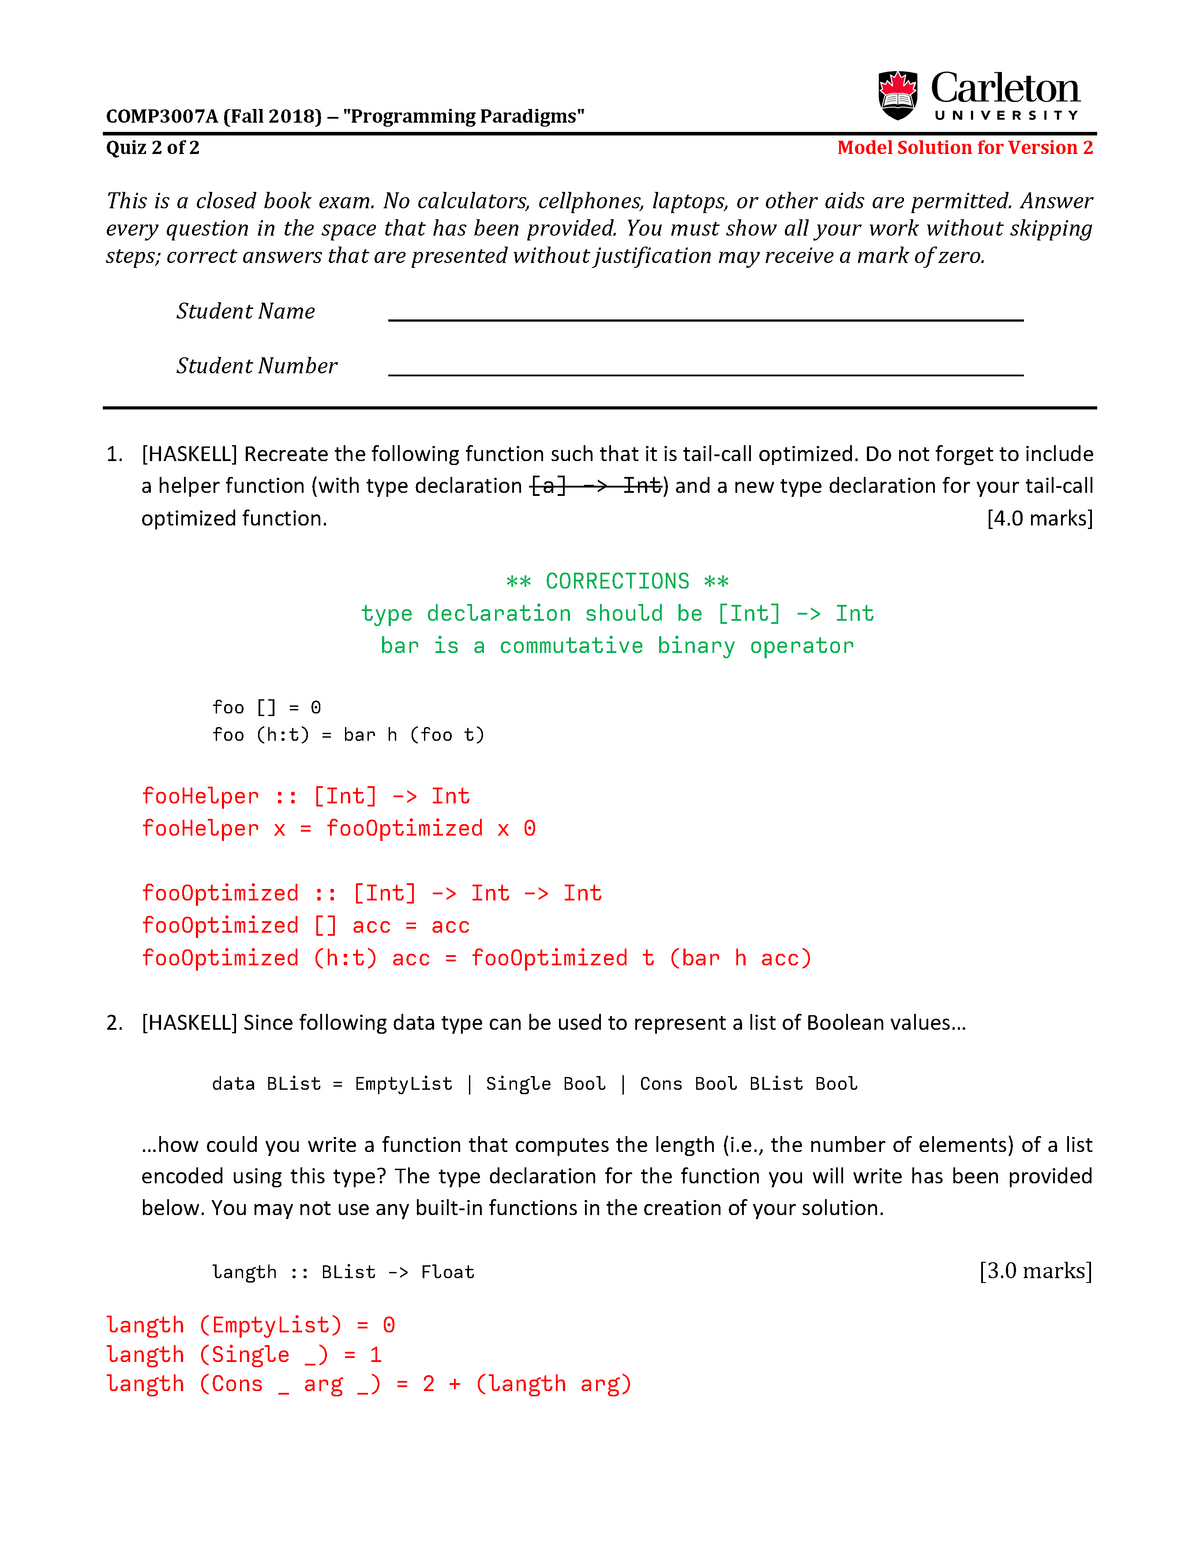 Model Solutions for Quiz 2 of 2 for COMP3007A - Version 2 - Comp